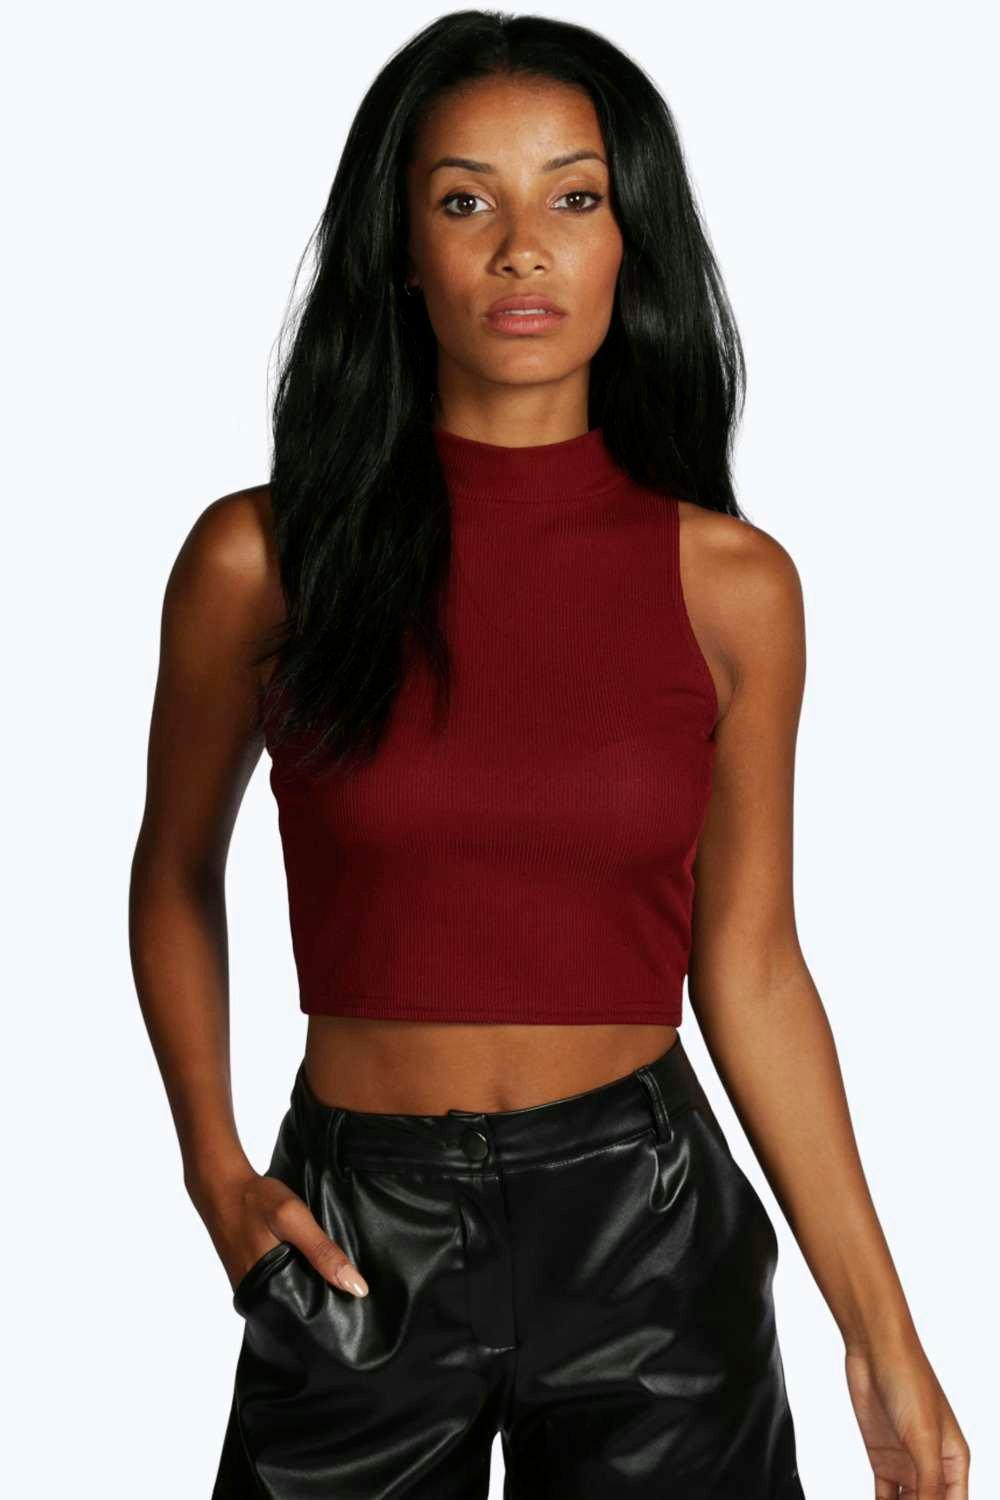 Angela Ribbed High Neck Sleeveless Top